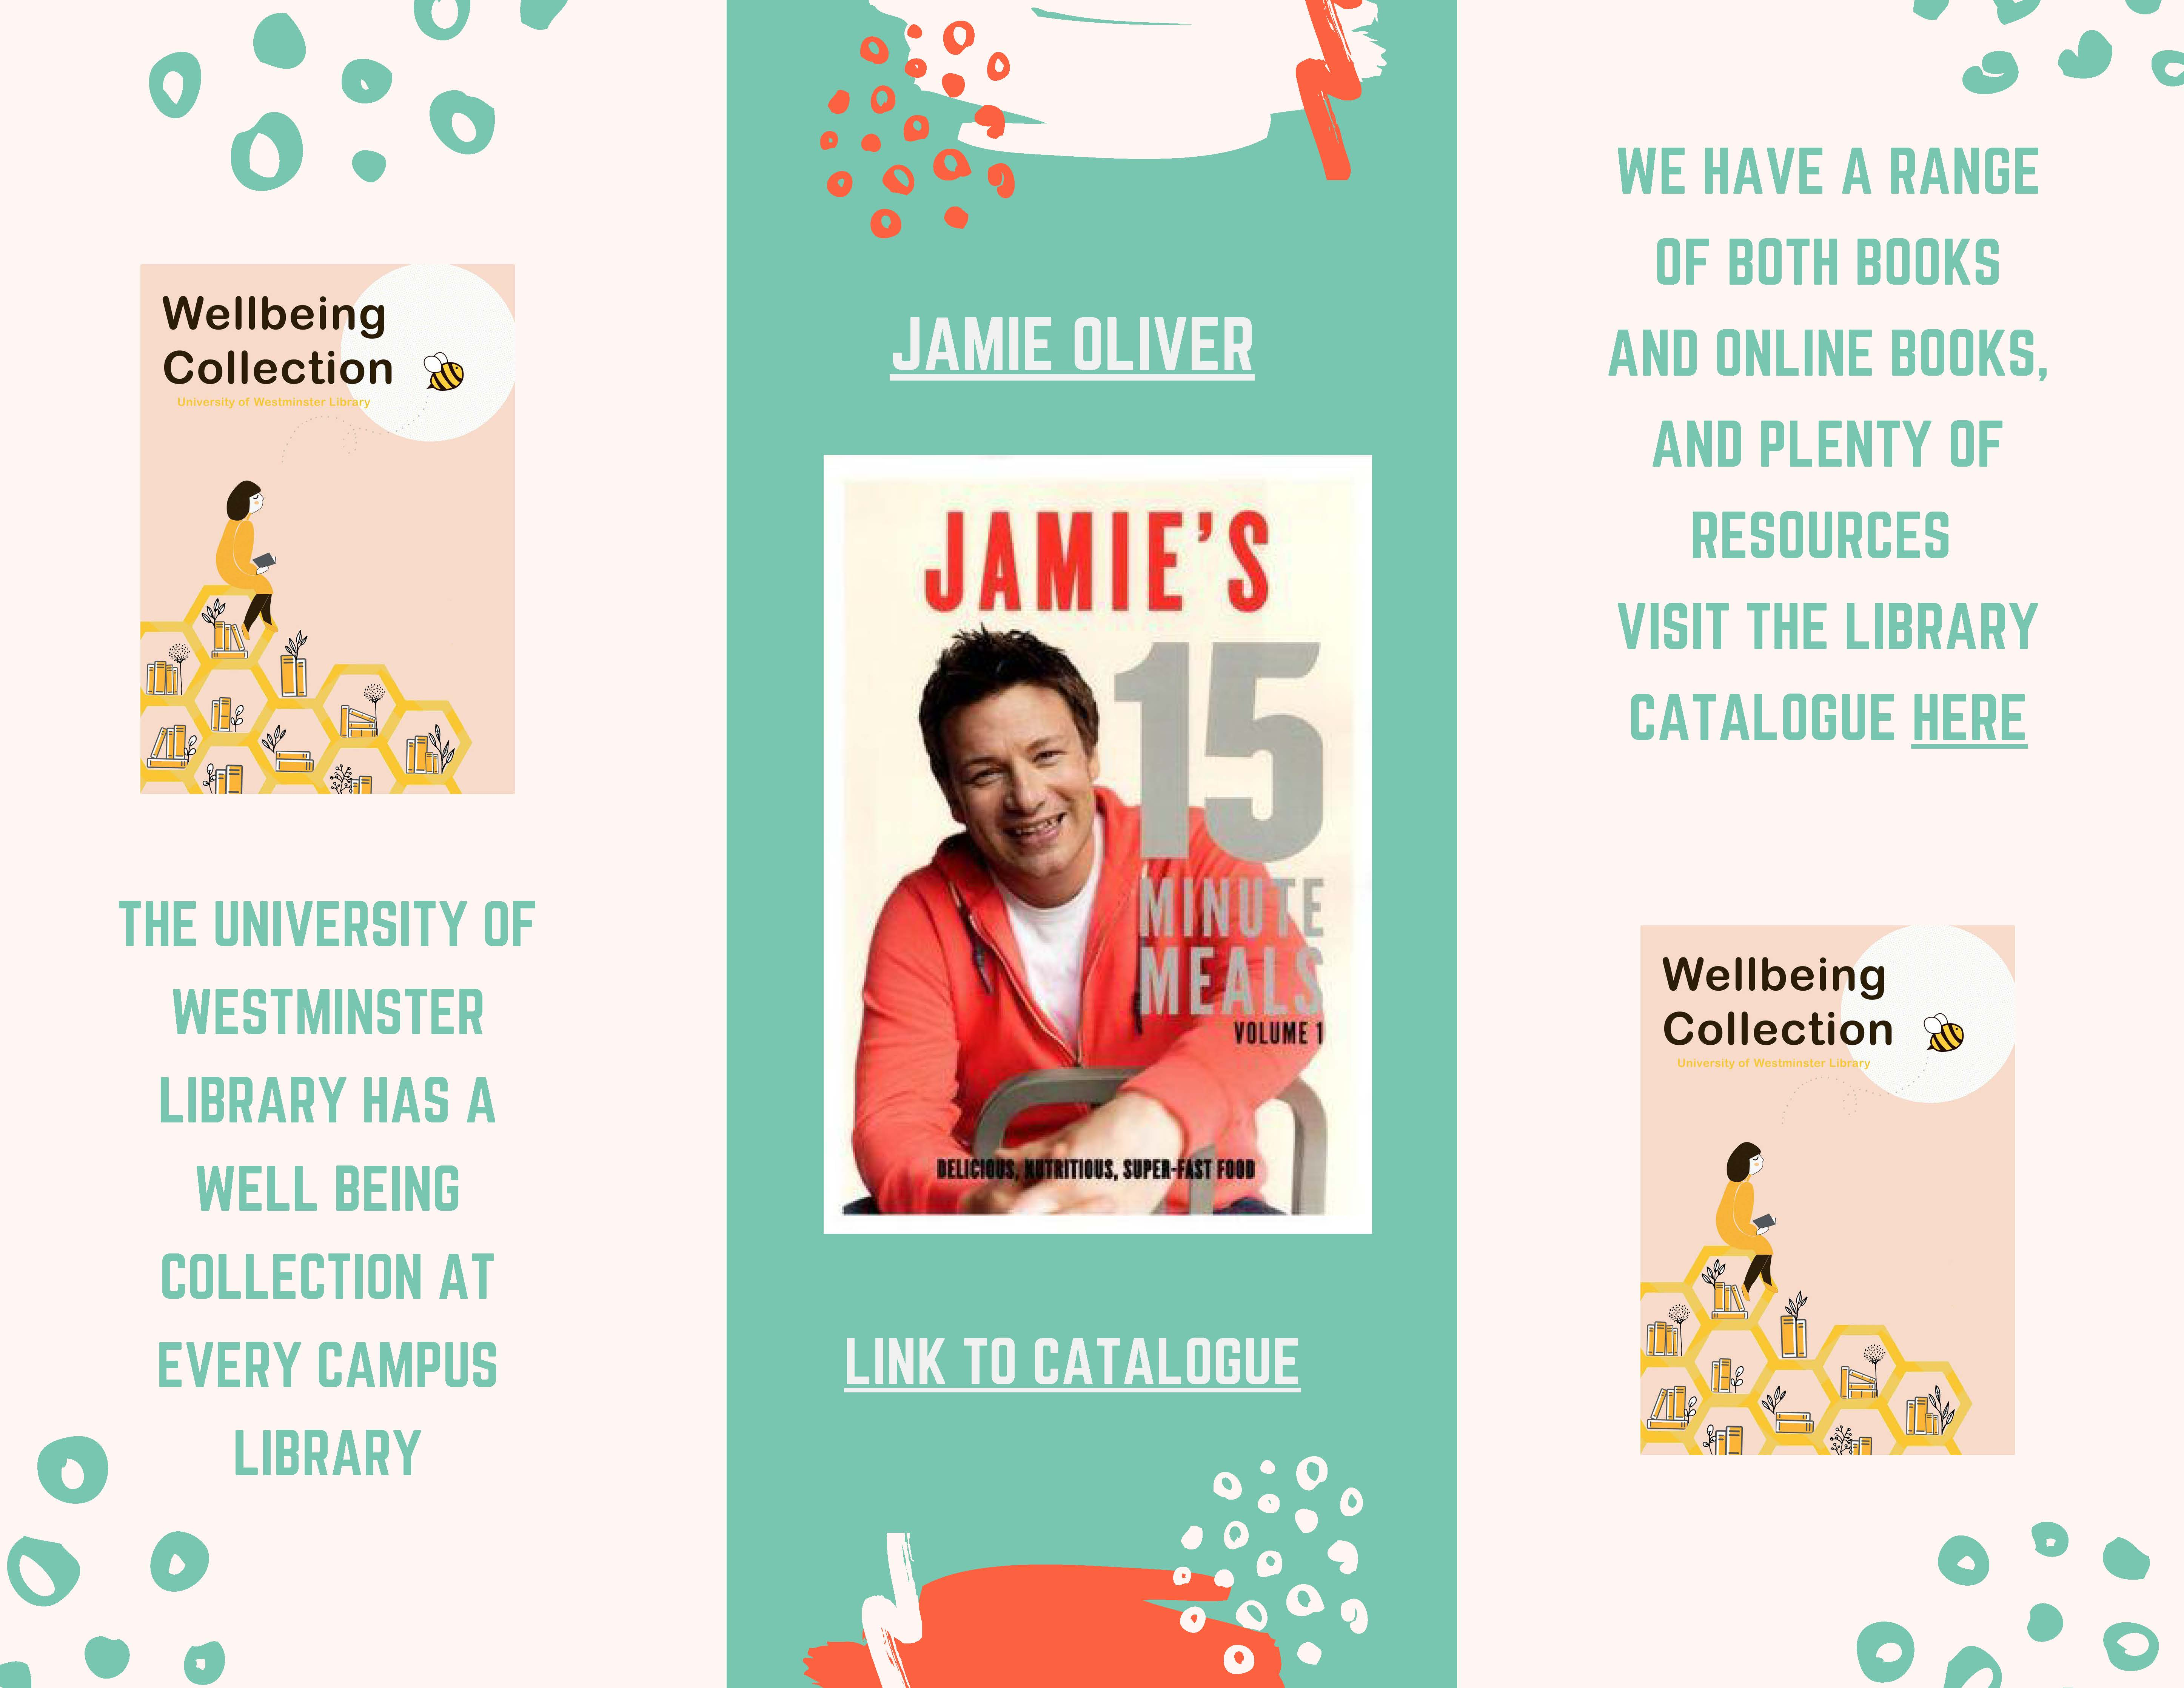 Jamie Oliver book covers